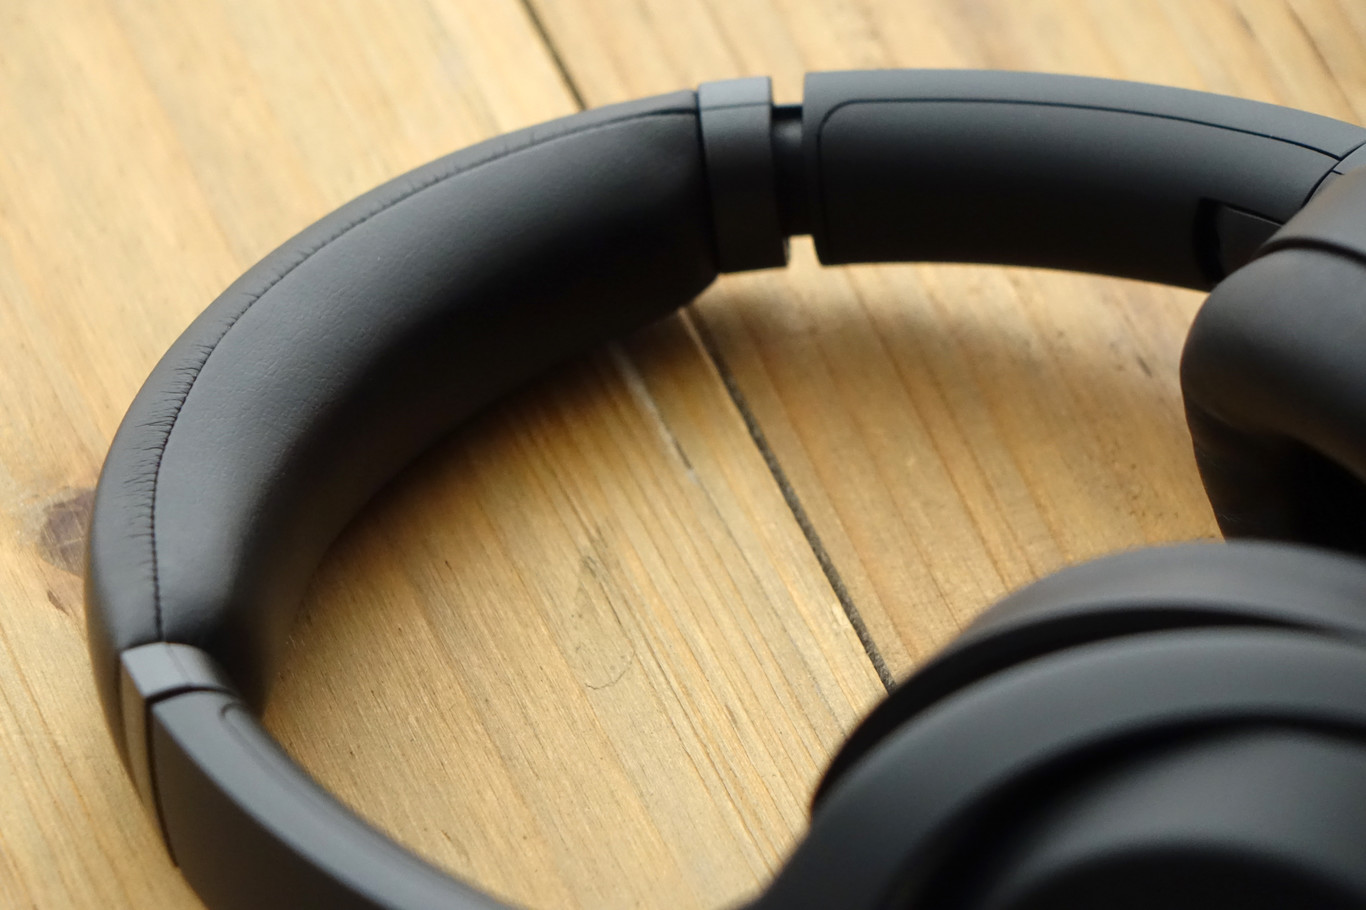 Sony WH-1000XM3: The perfect rival to beat the other